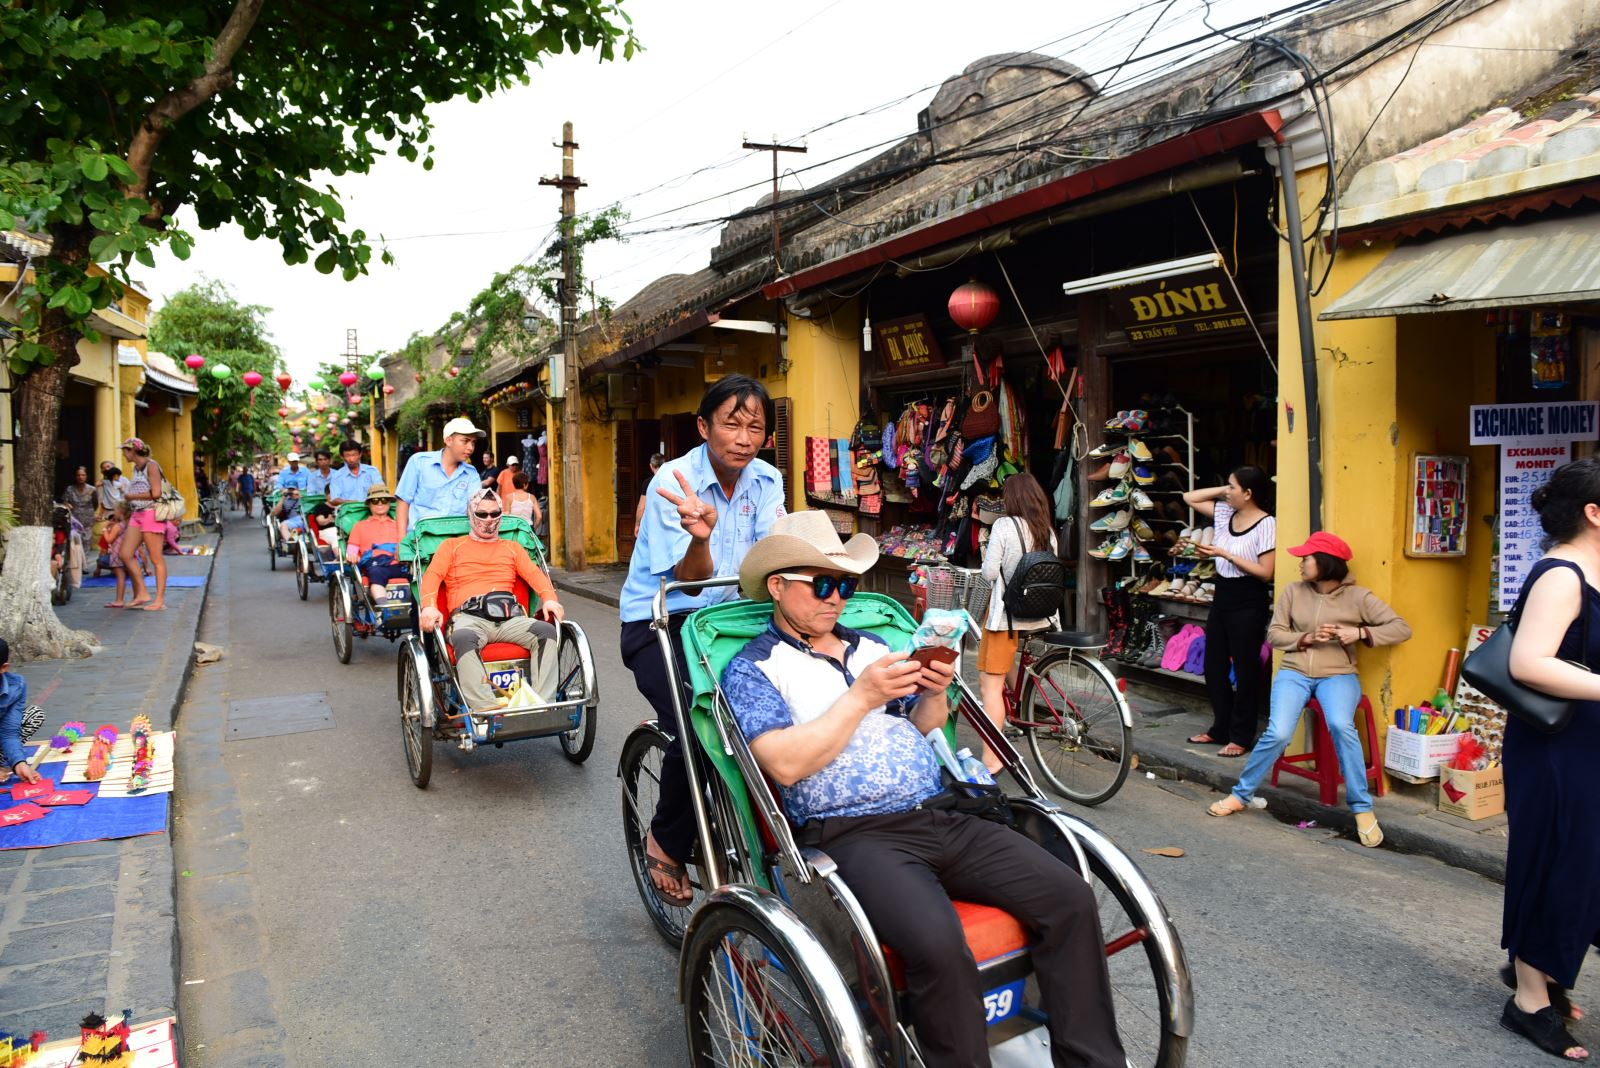 Tourists on cycles in Hoi An ancient town. Photo: baotintuc